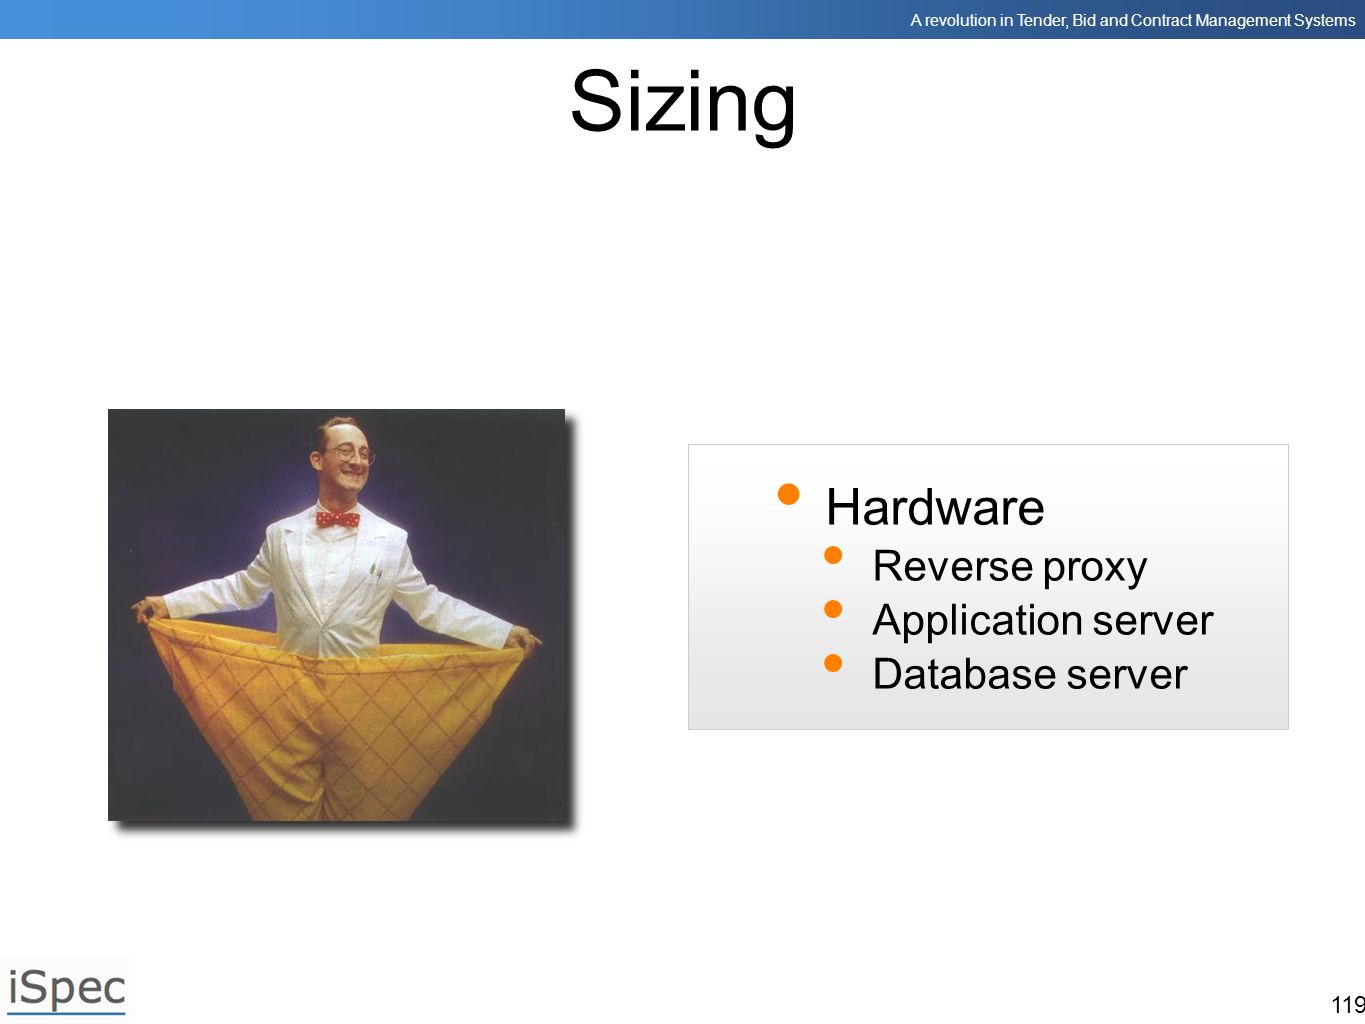 Sizing Hardware Reverse proxy Application server Database server